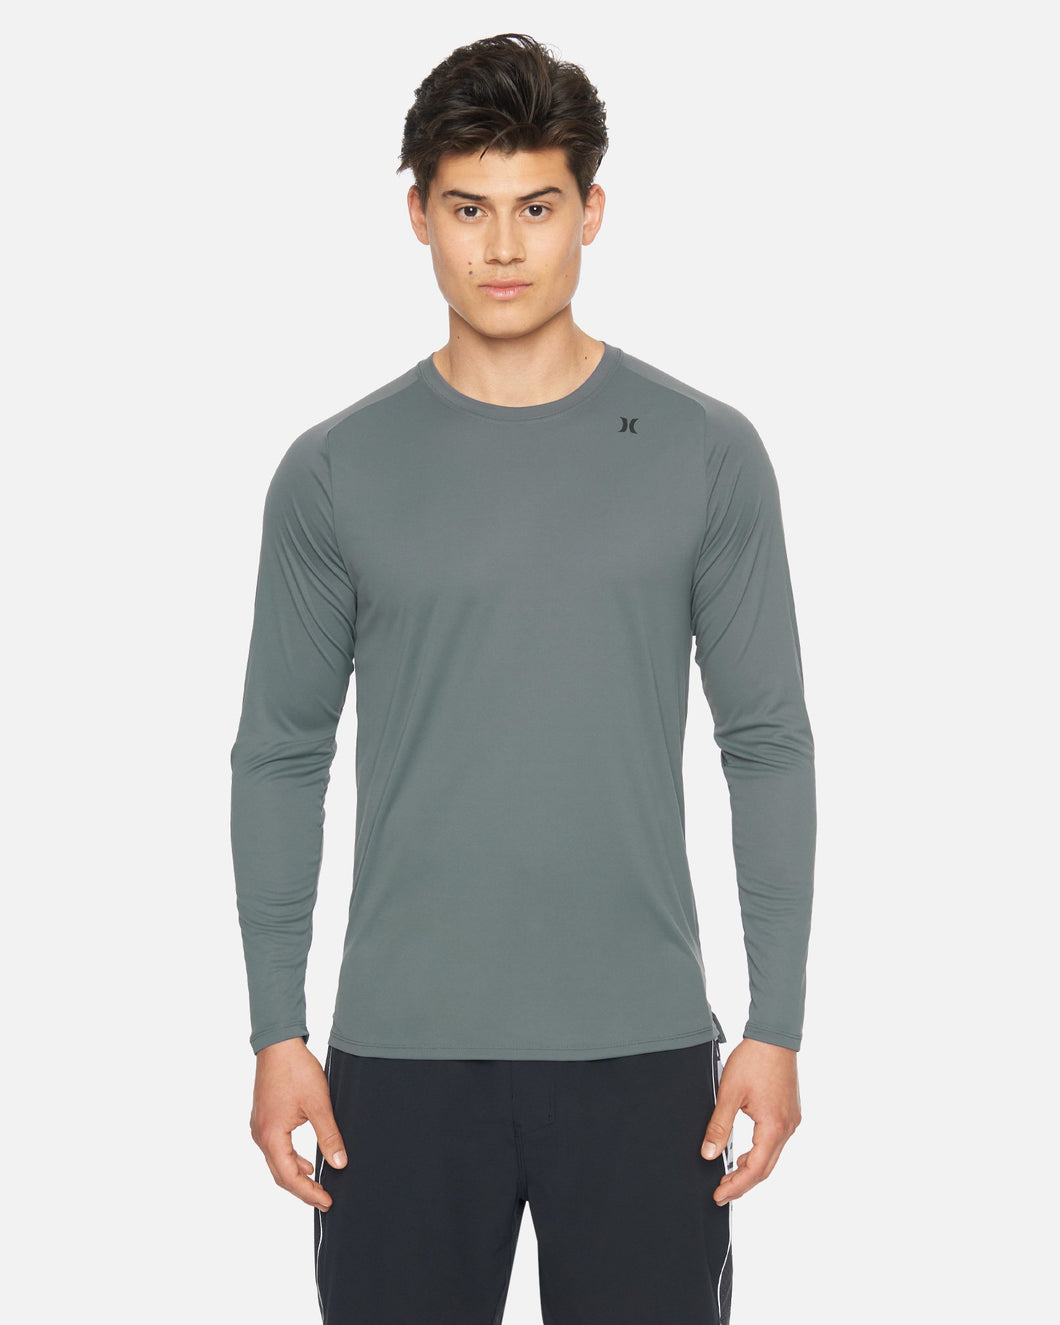 Hurley Men's Quick Dry L/S Rashie T-Shirt - Iron Grey